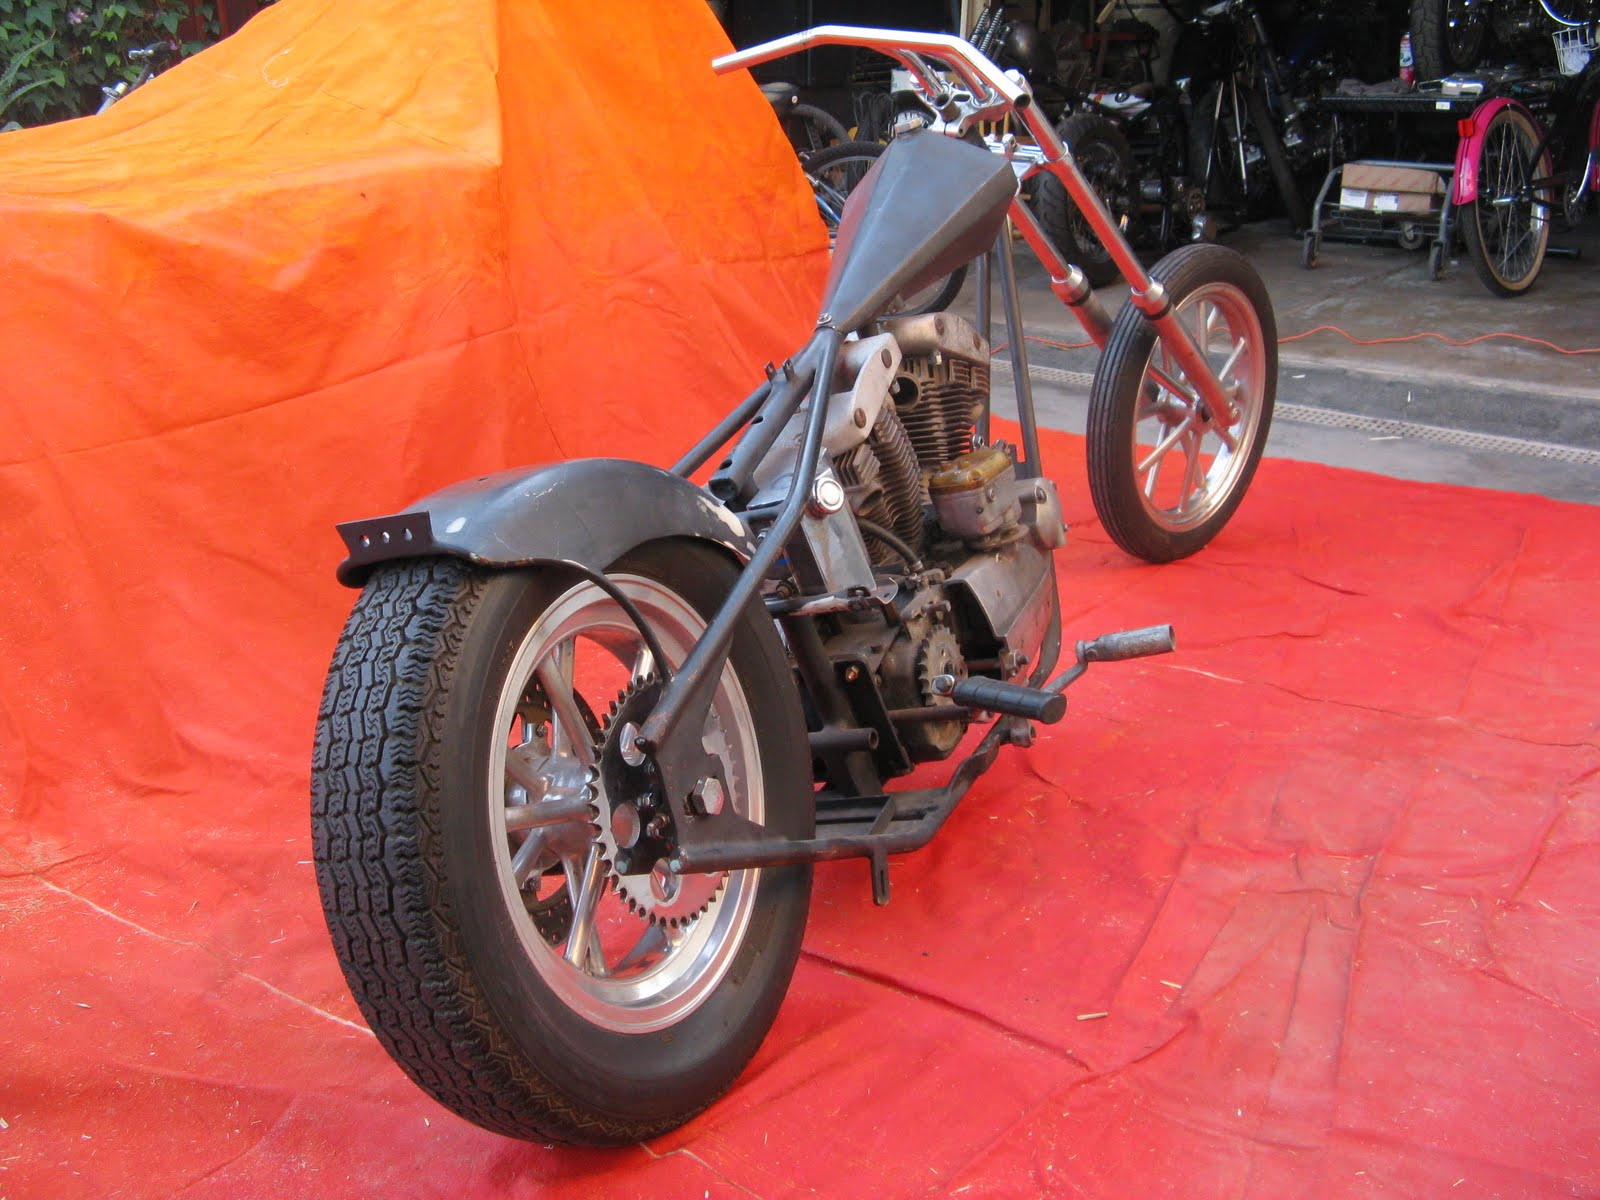 Dago S Speed Shop Arlen Ness Digger Sporty For Sale Quot Sold Quot